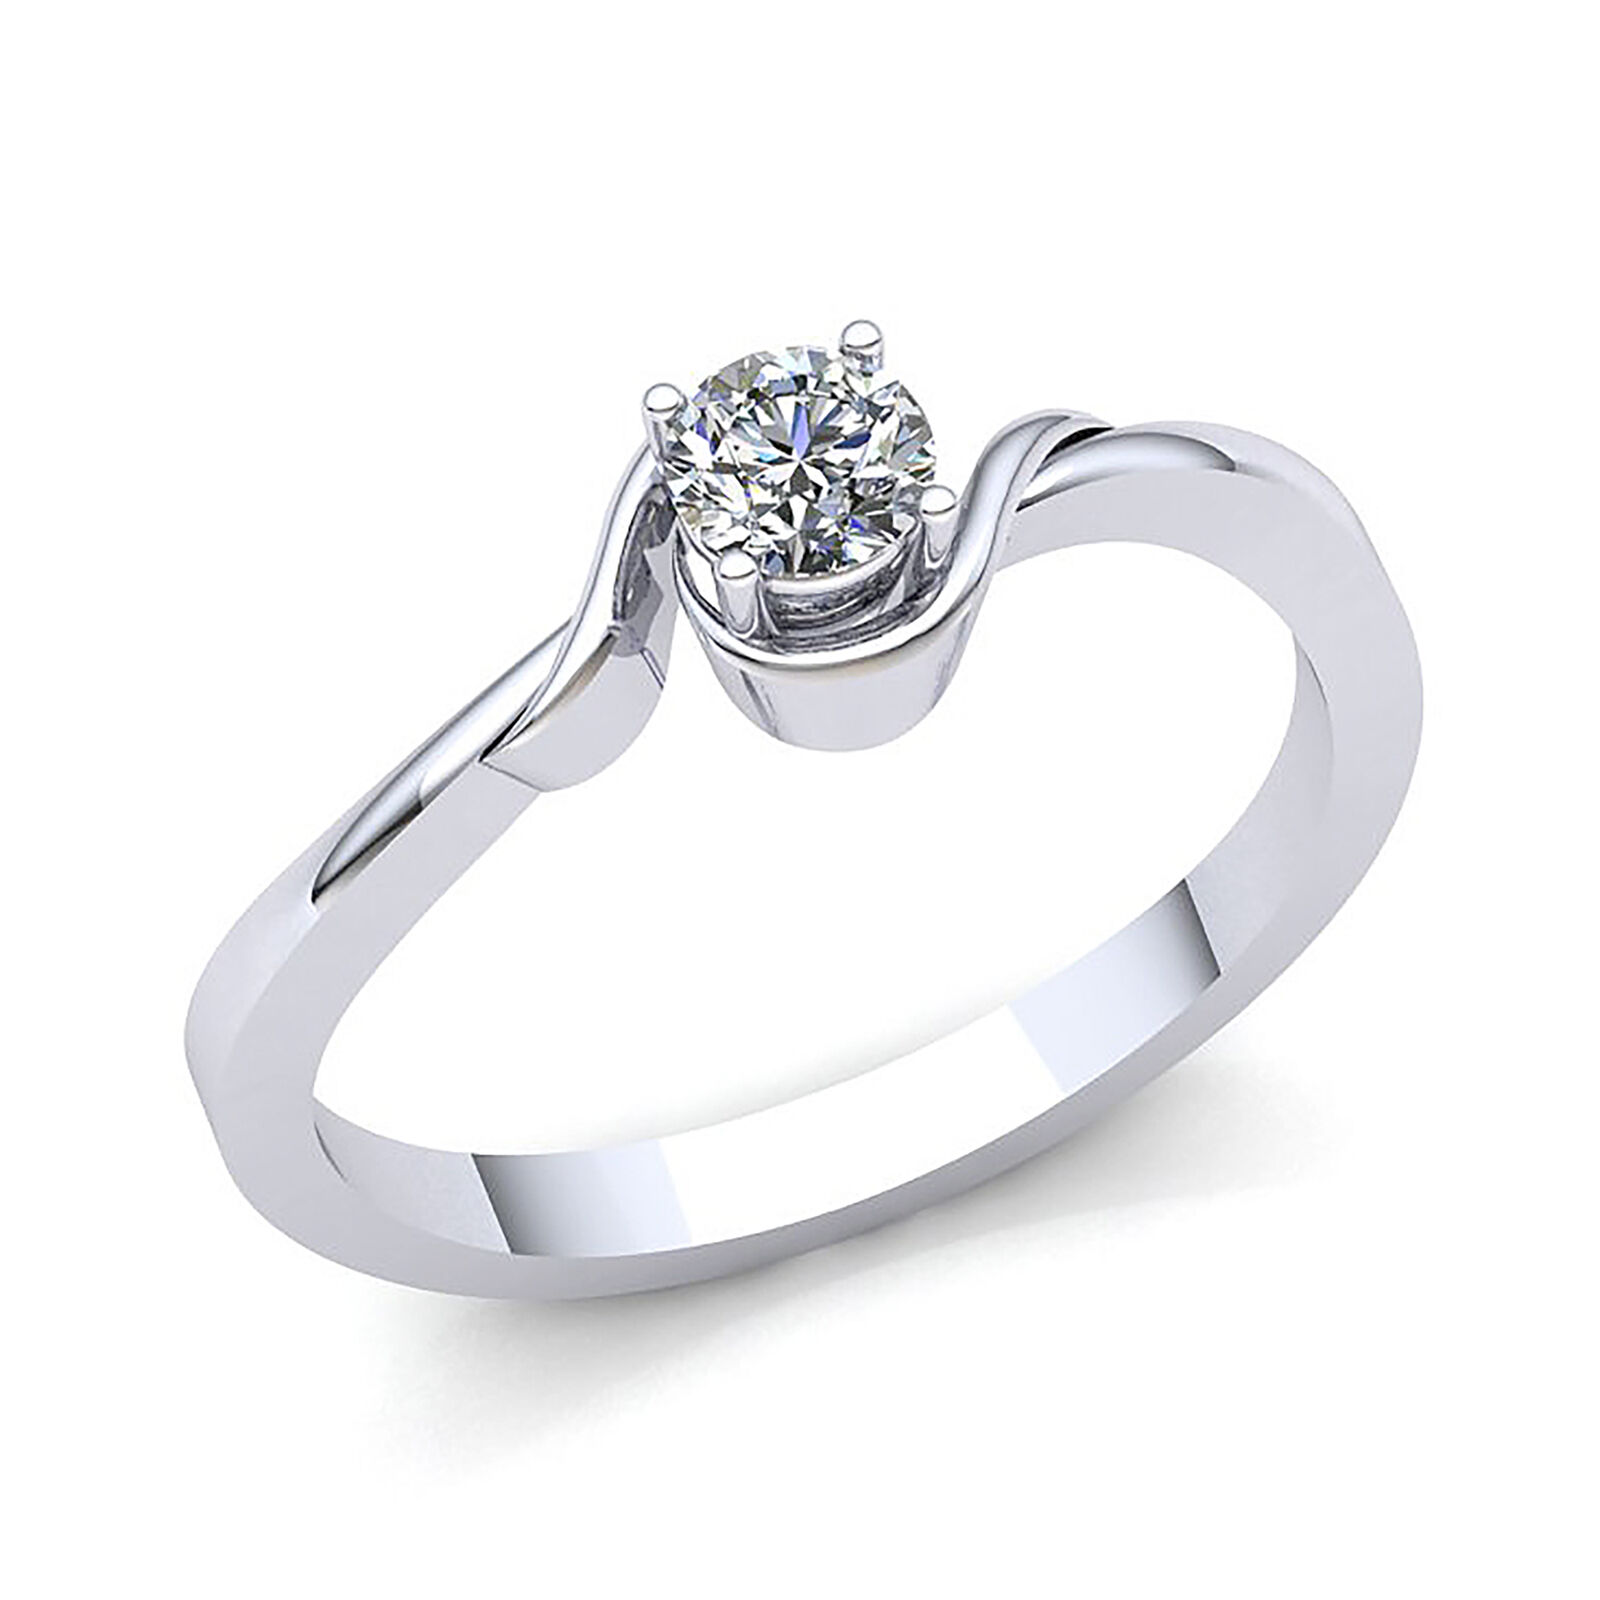 Real 0.5Ct Round Cut Diamond Ladies Solitaire Engagement Ring Modern 10Kt gold